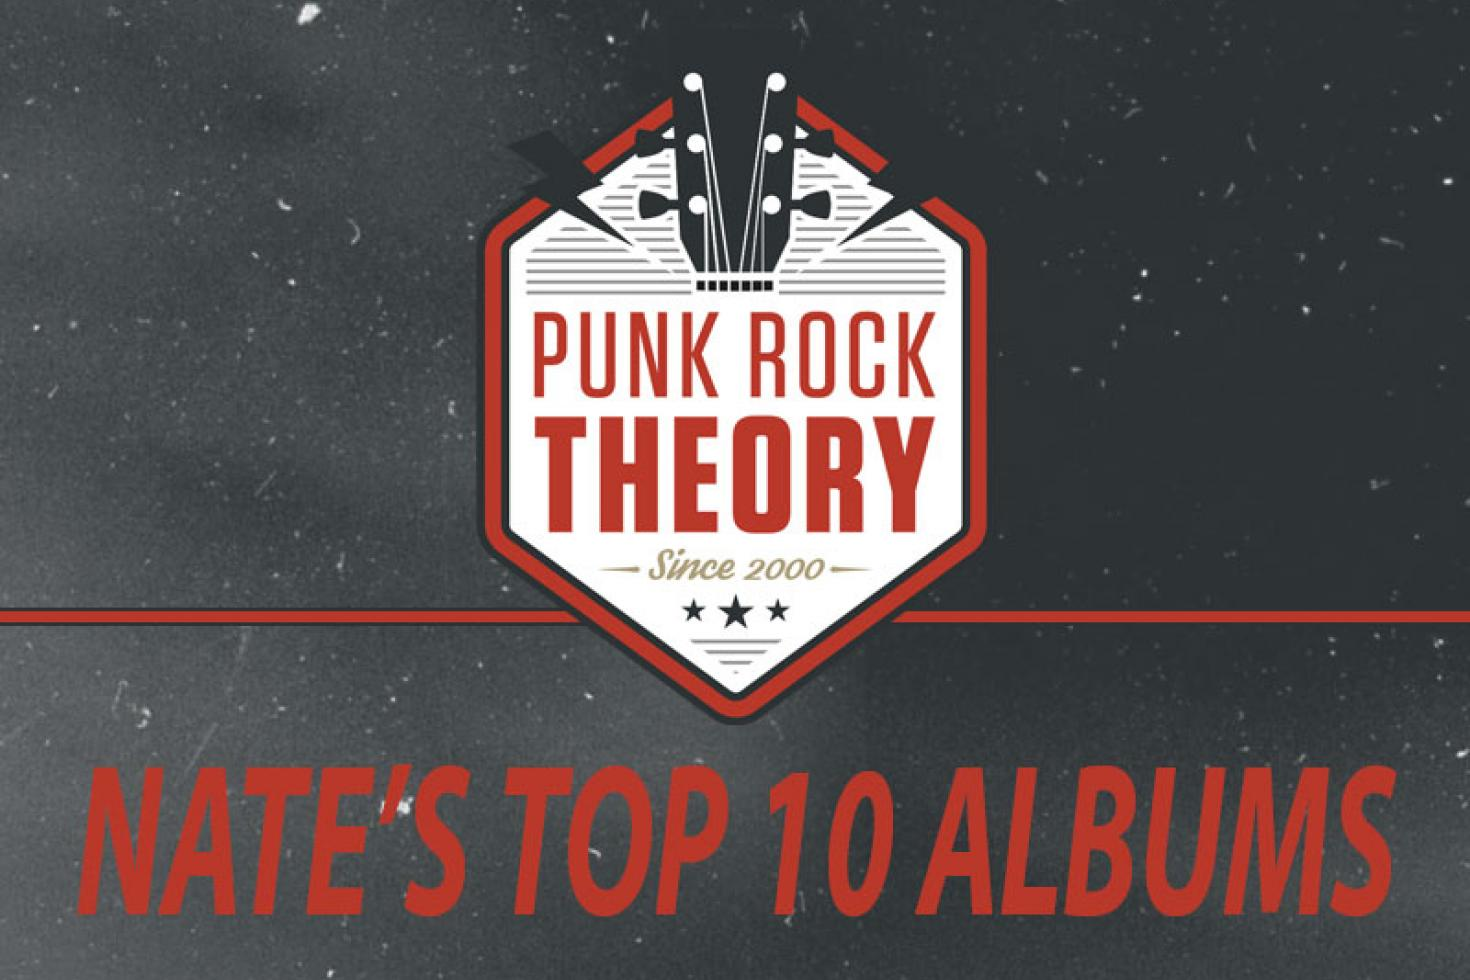 Nate's top 10 albums of 2018